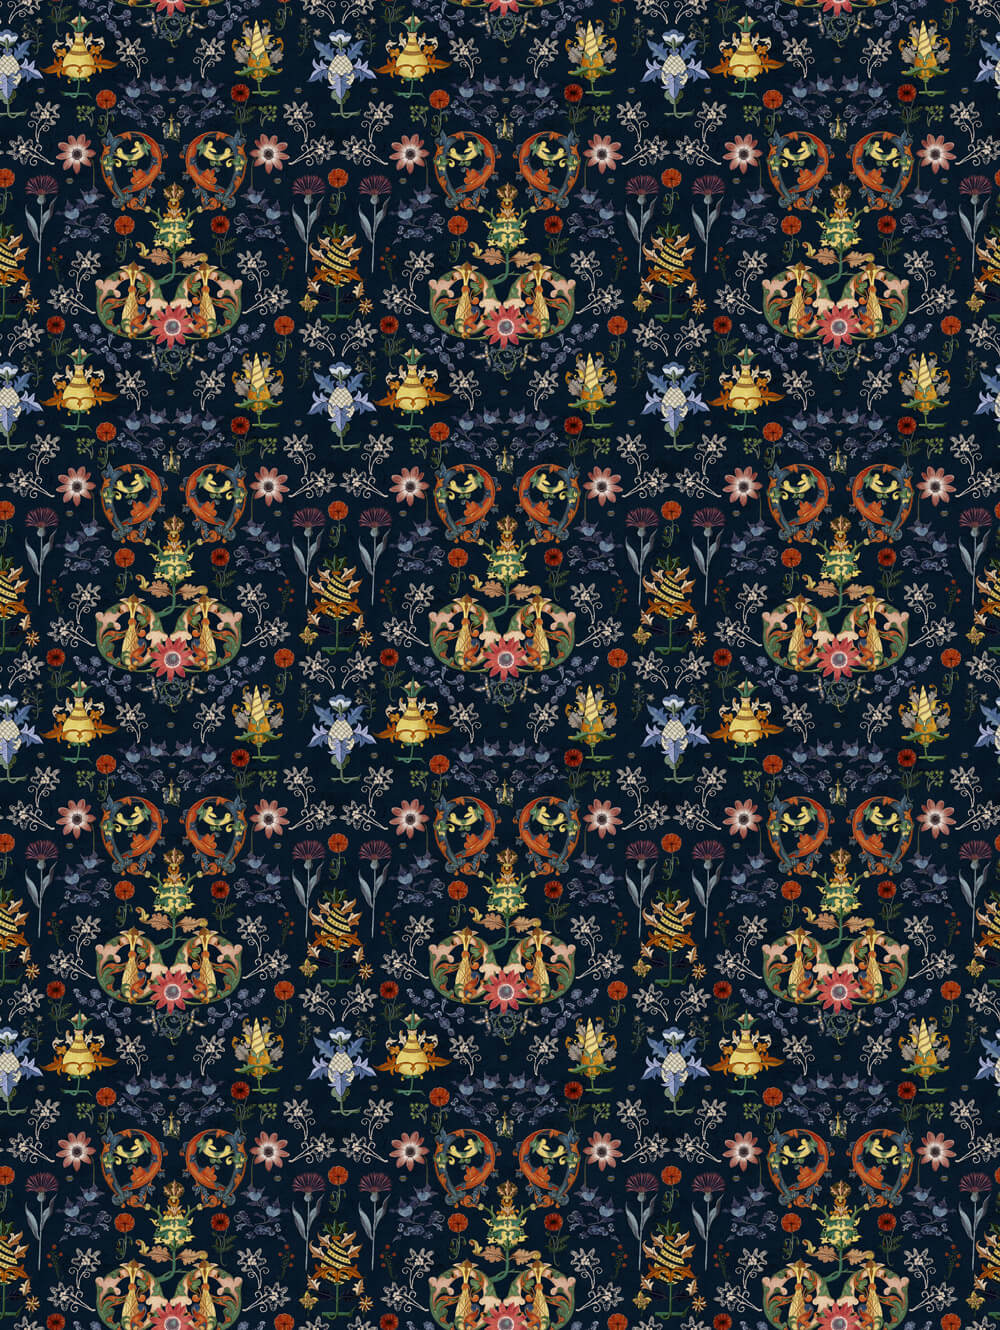 Mind the Gap Translyvania Folk Black / Multicoloured Fabric - Product code: FB00012